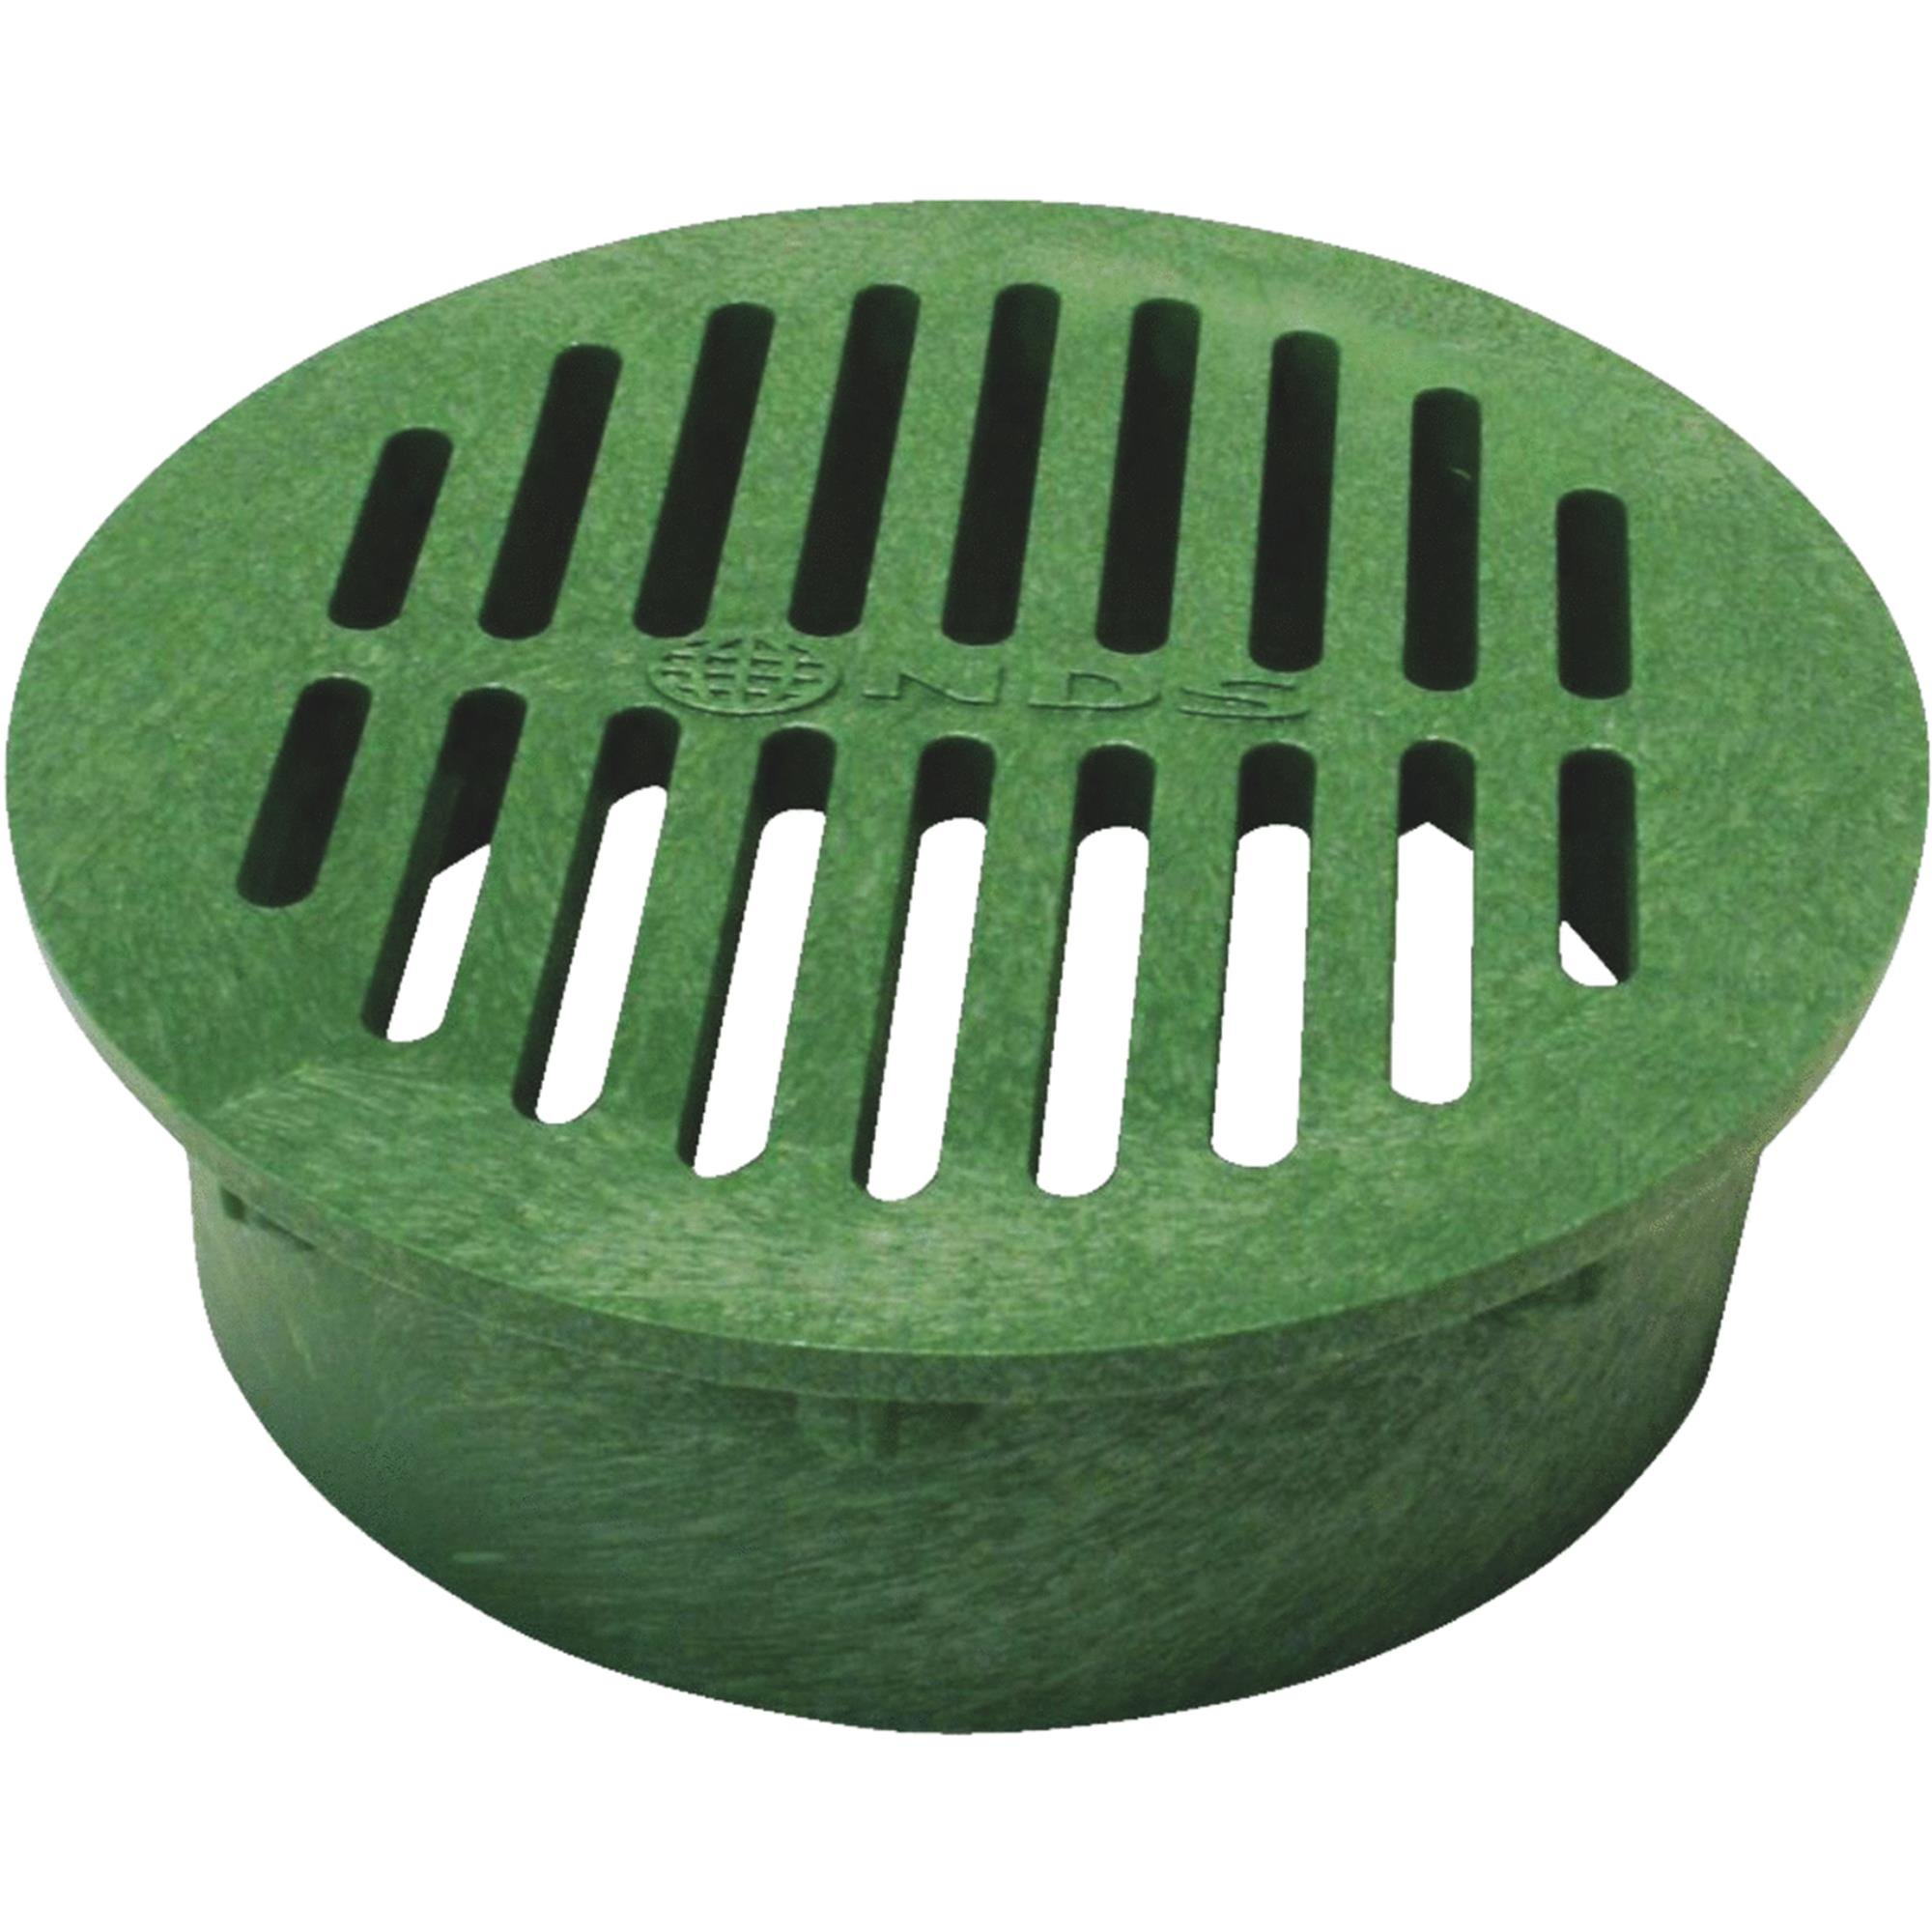 NDS 8 In. Green Round Grate